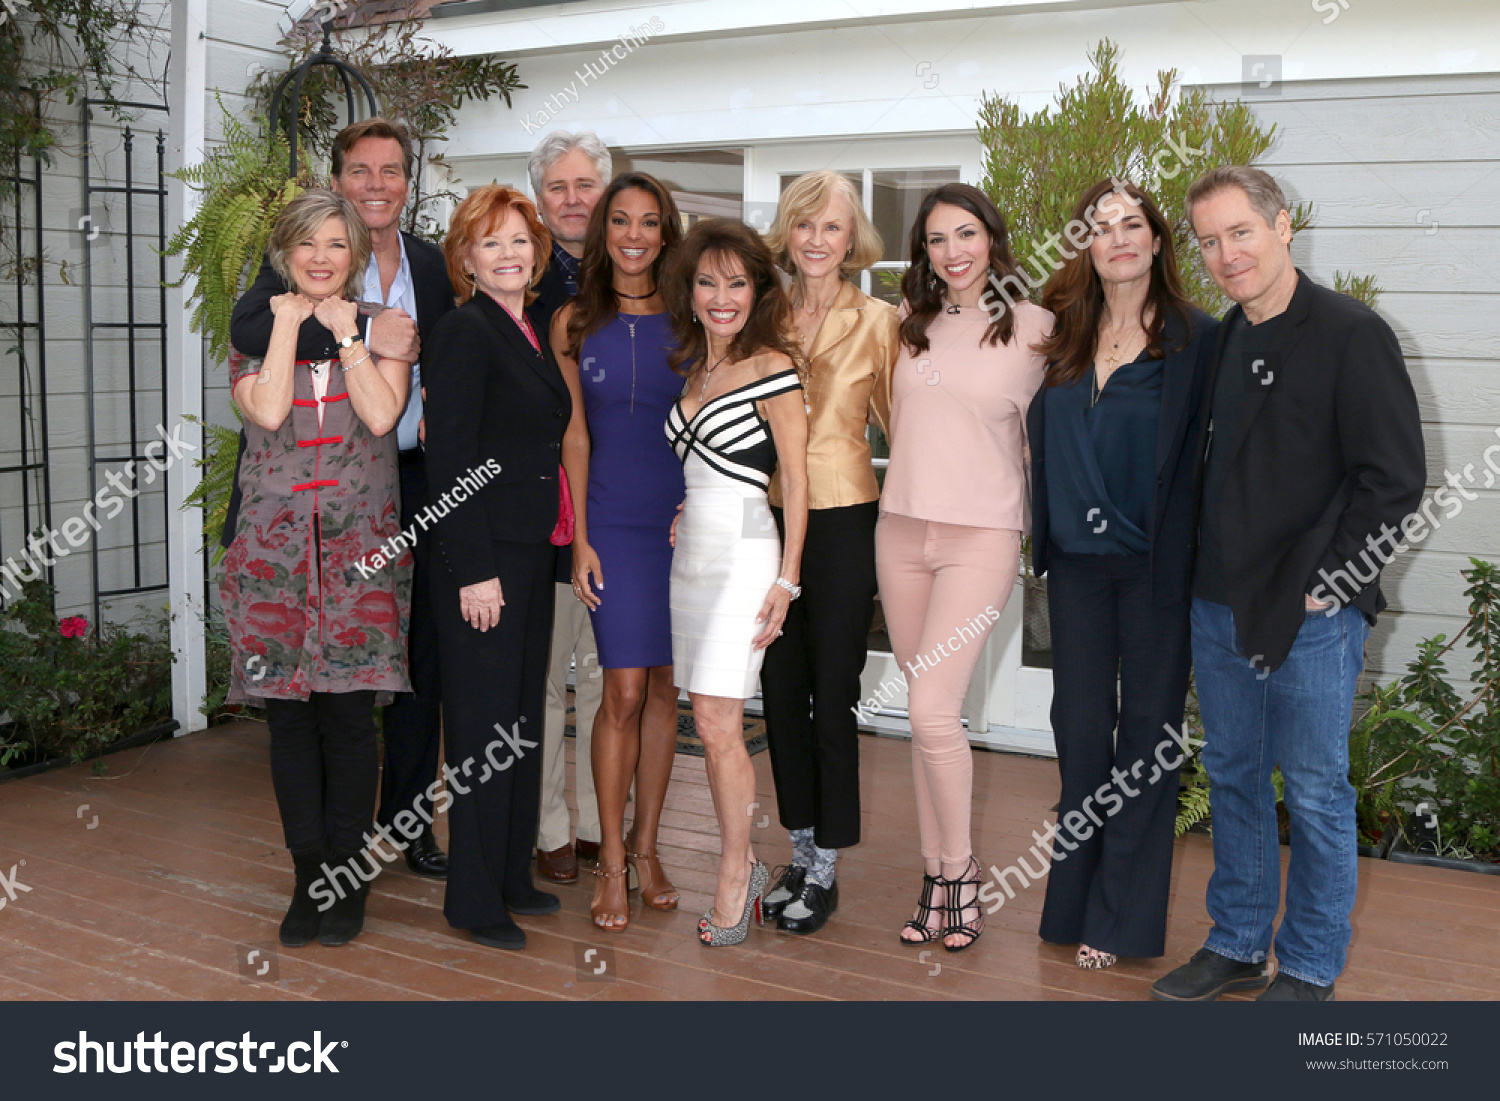 Home and family cast pictures.